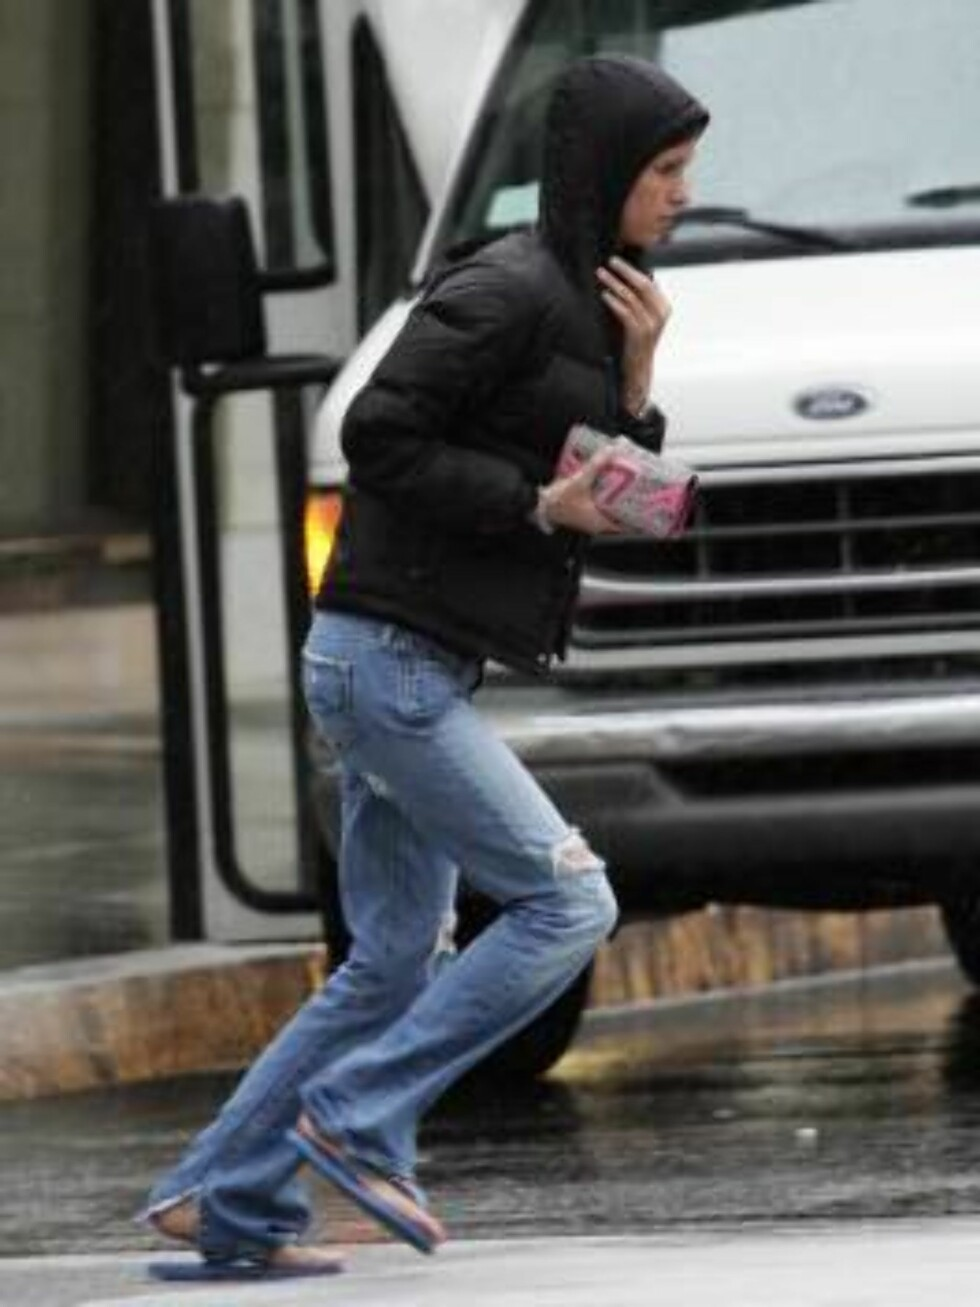 Code: X17XX8 - Ferderik Madison, Beverly Hills, USA, 11.02.2005: Nicky Hilton made a BIG purchase at Gucci during a shopping trip in the rain.  The younger Hilton wore rubber flip flops in the cold downpour and stood in the rian for a smoke before enterin Foto: All Over Press